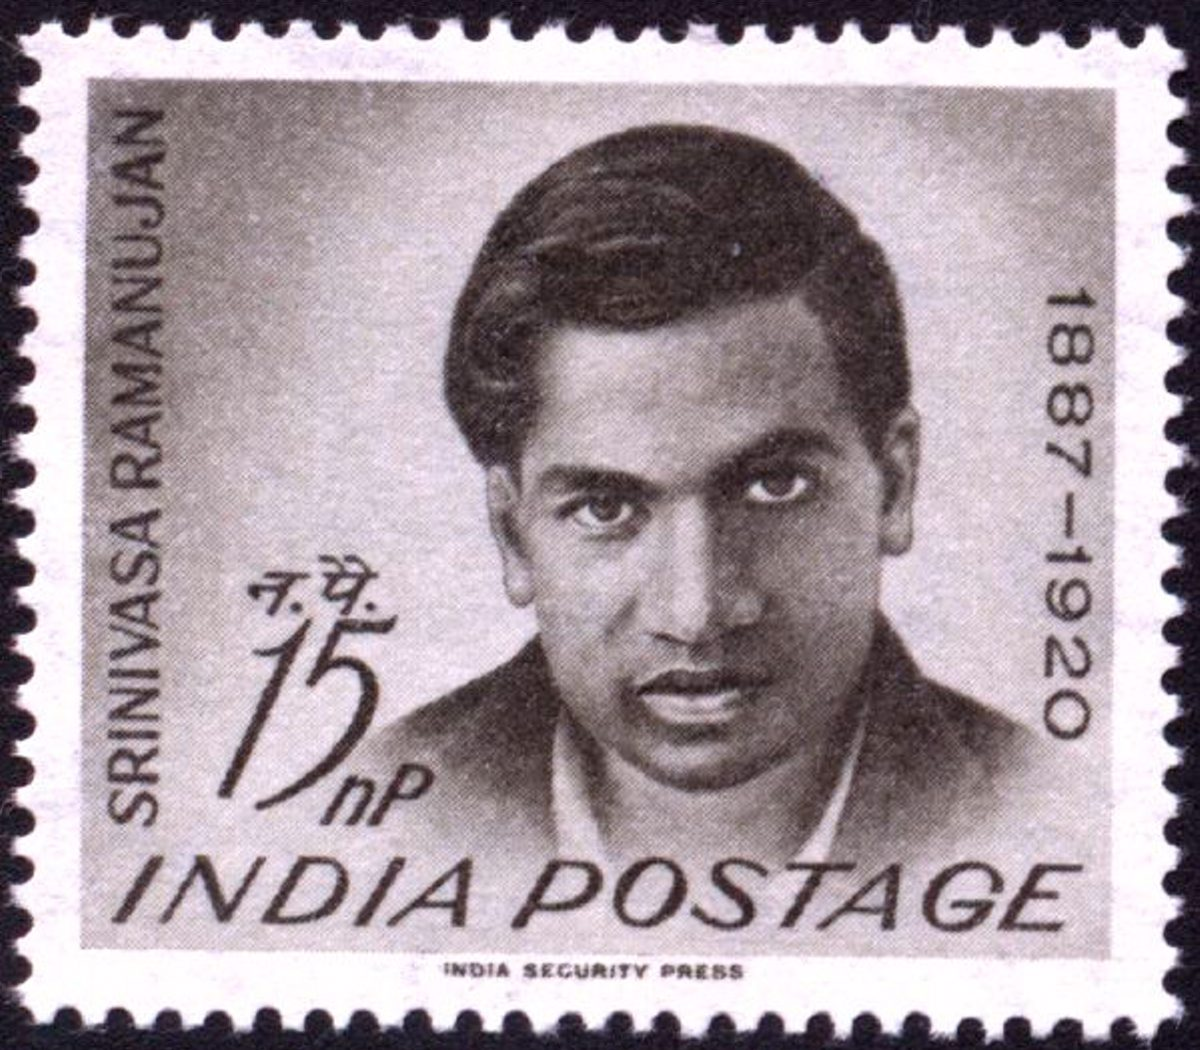 small essay on ramanujan A short biography of famous mathematician - srinivasa ramanujan - part 1 0 india is a country blessed with great mathematicians and scientists.